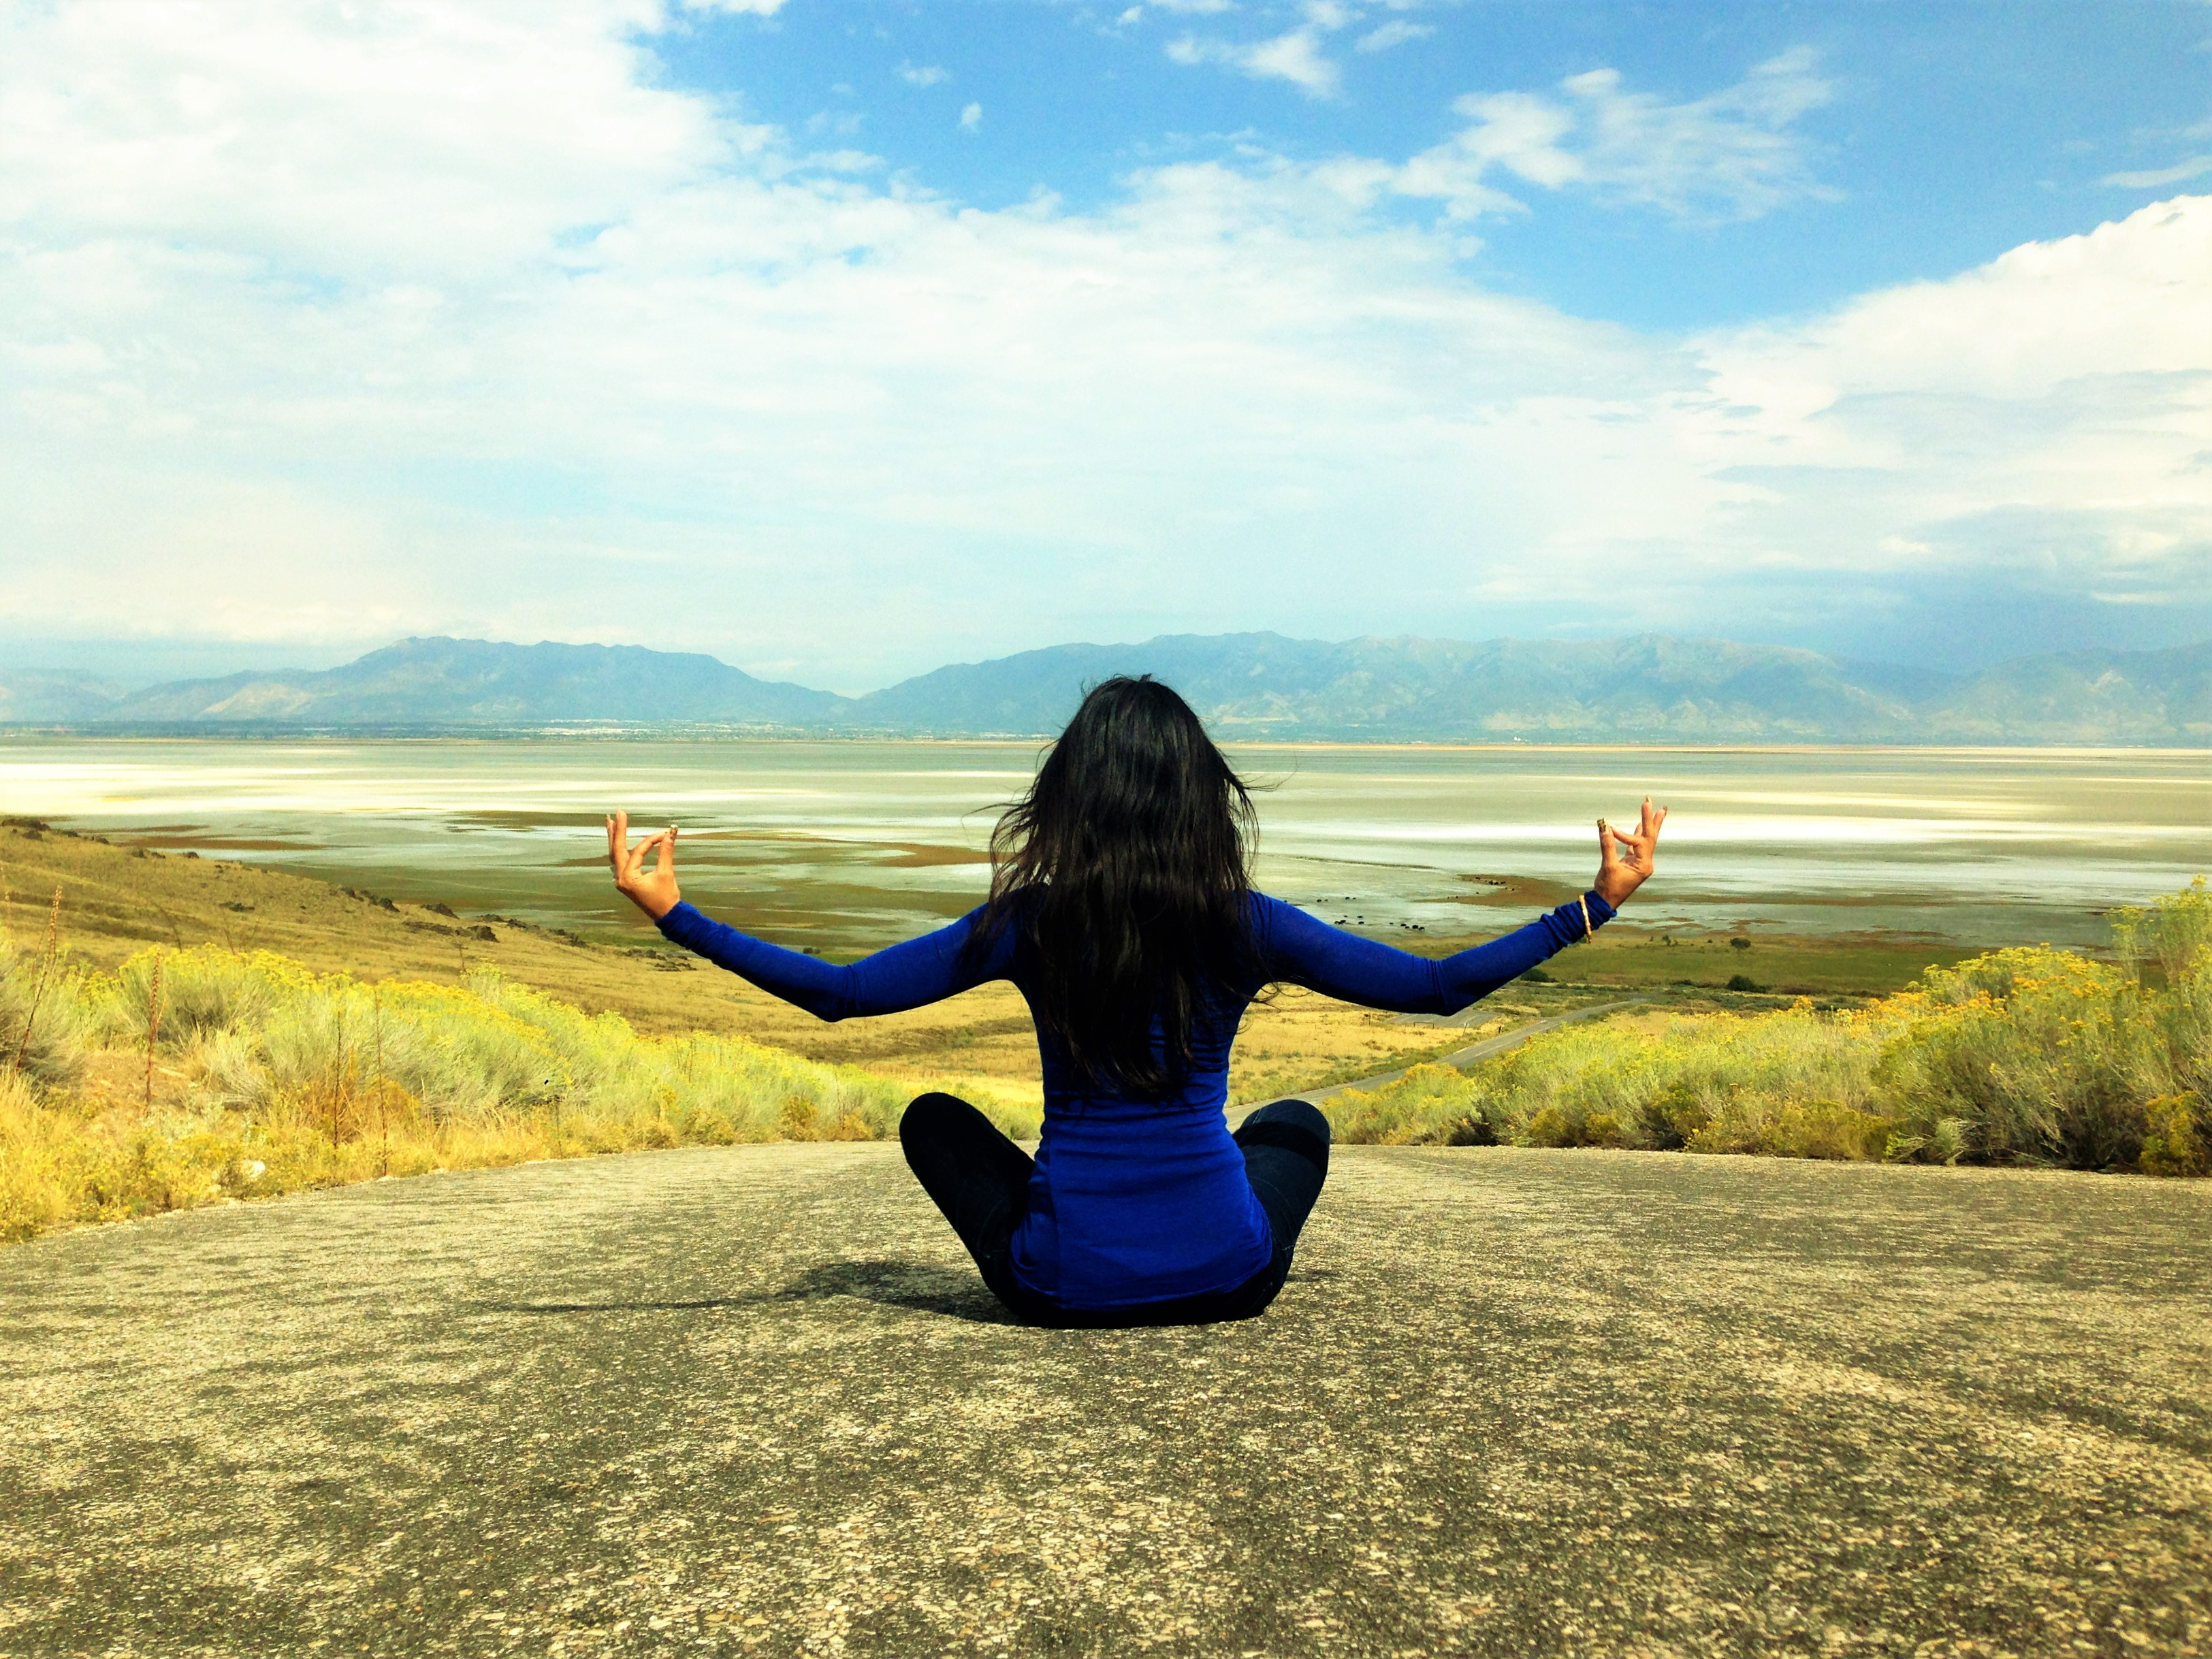 MEDITATION EXPERIENCE LAUNCHED!